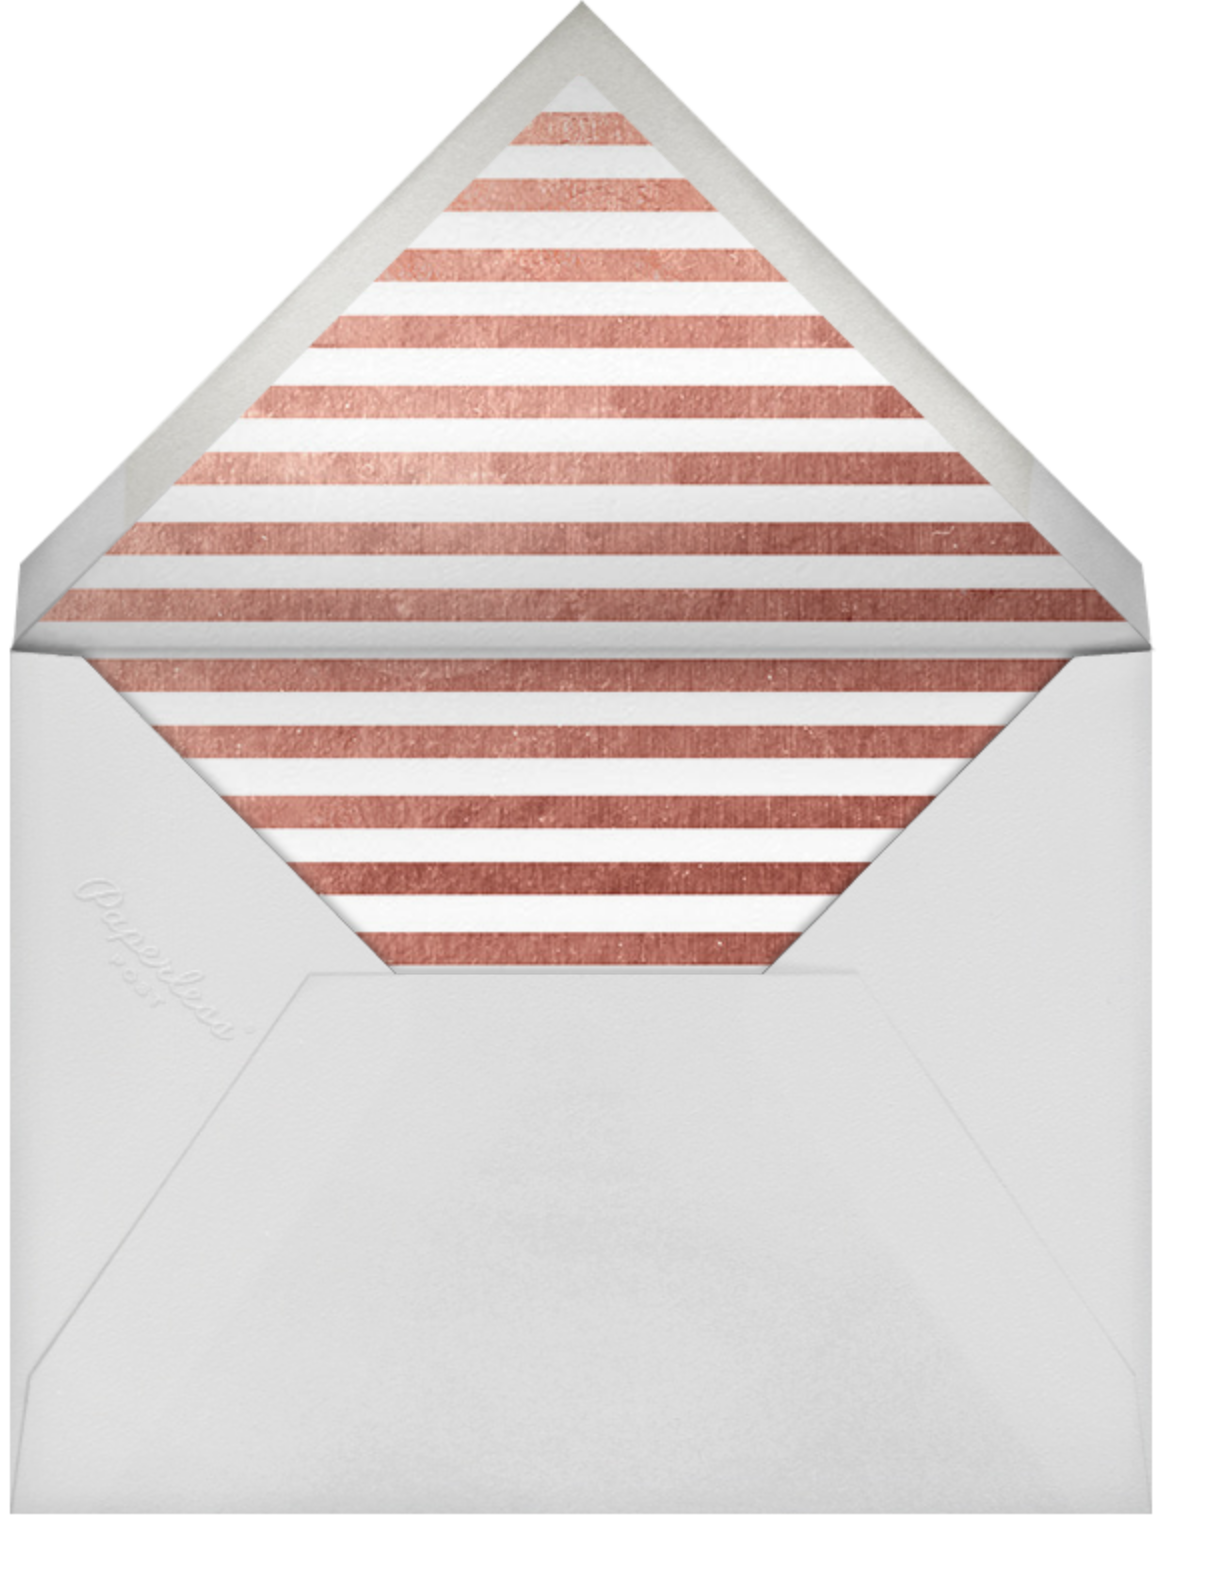 Confetti (Invitation) - White/Rose Gold - kate spade new york - All - envelope back